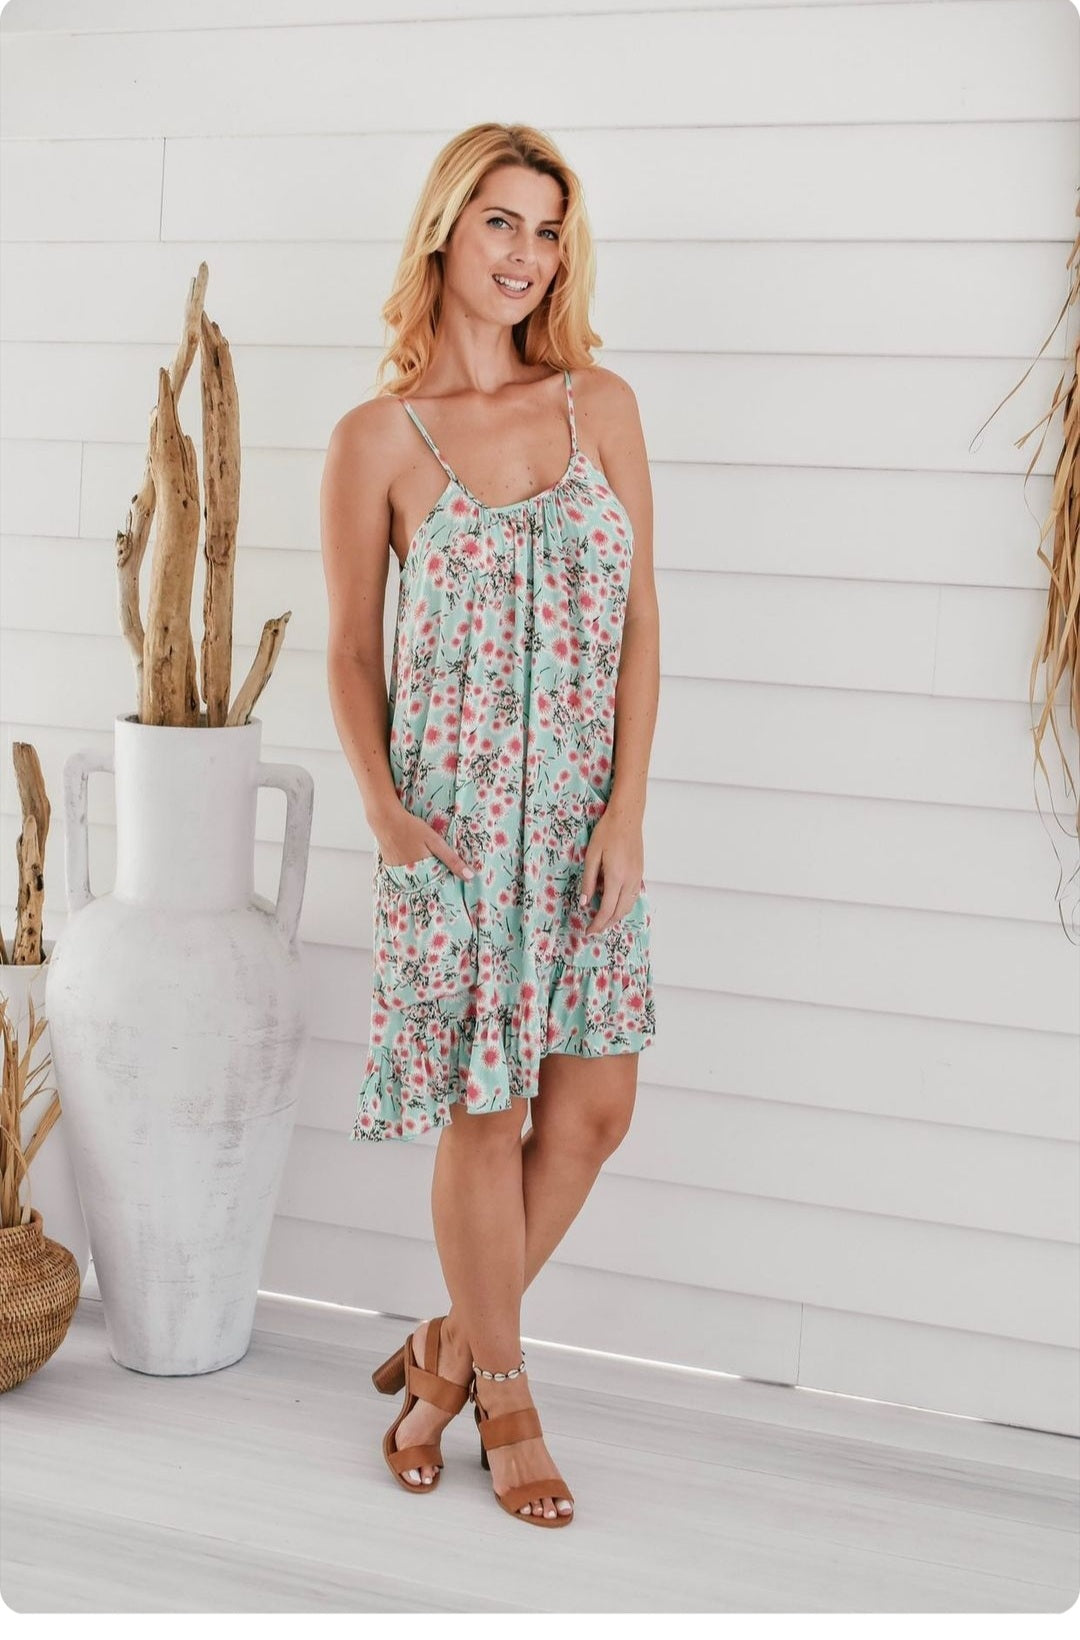 Zen Garden - Strappy Mint Sun Dress